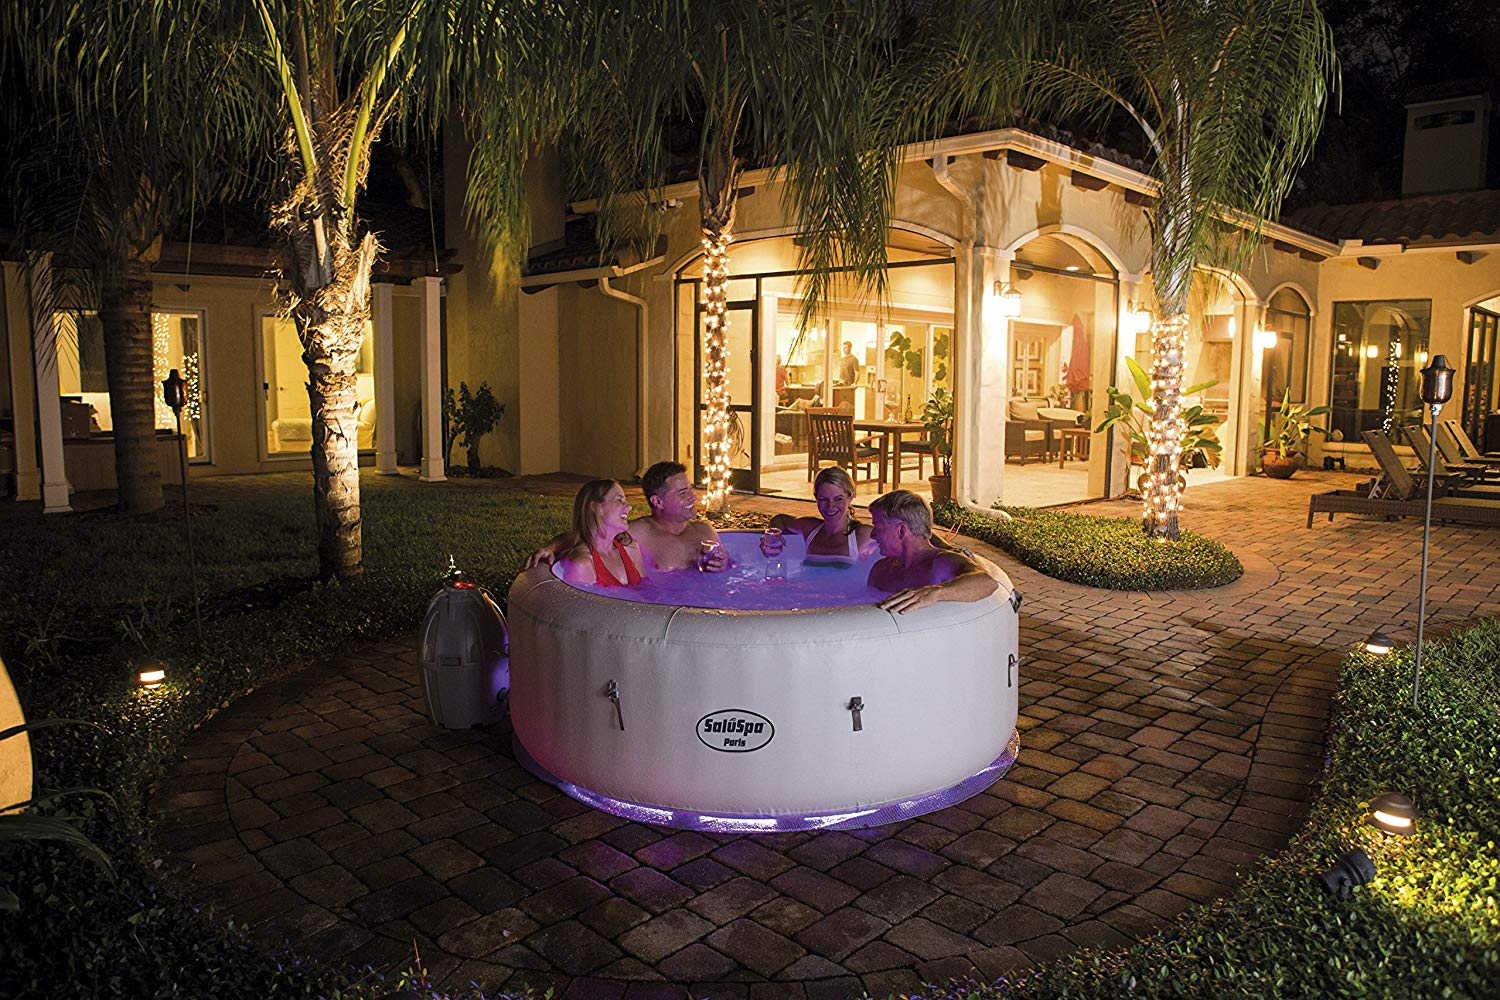 Top 10 Best Portable Hot Tubs in 2020 Reviews & Buying Guide